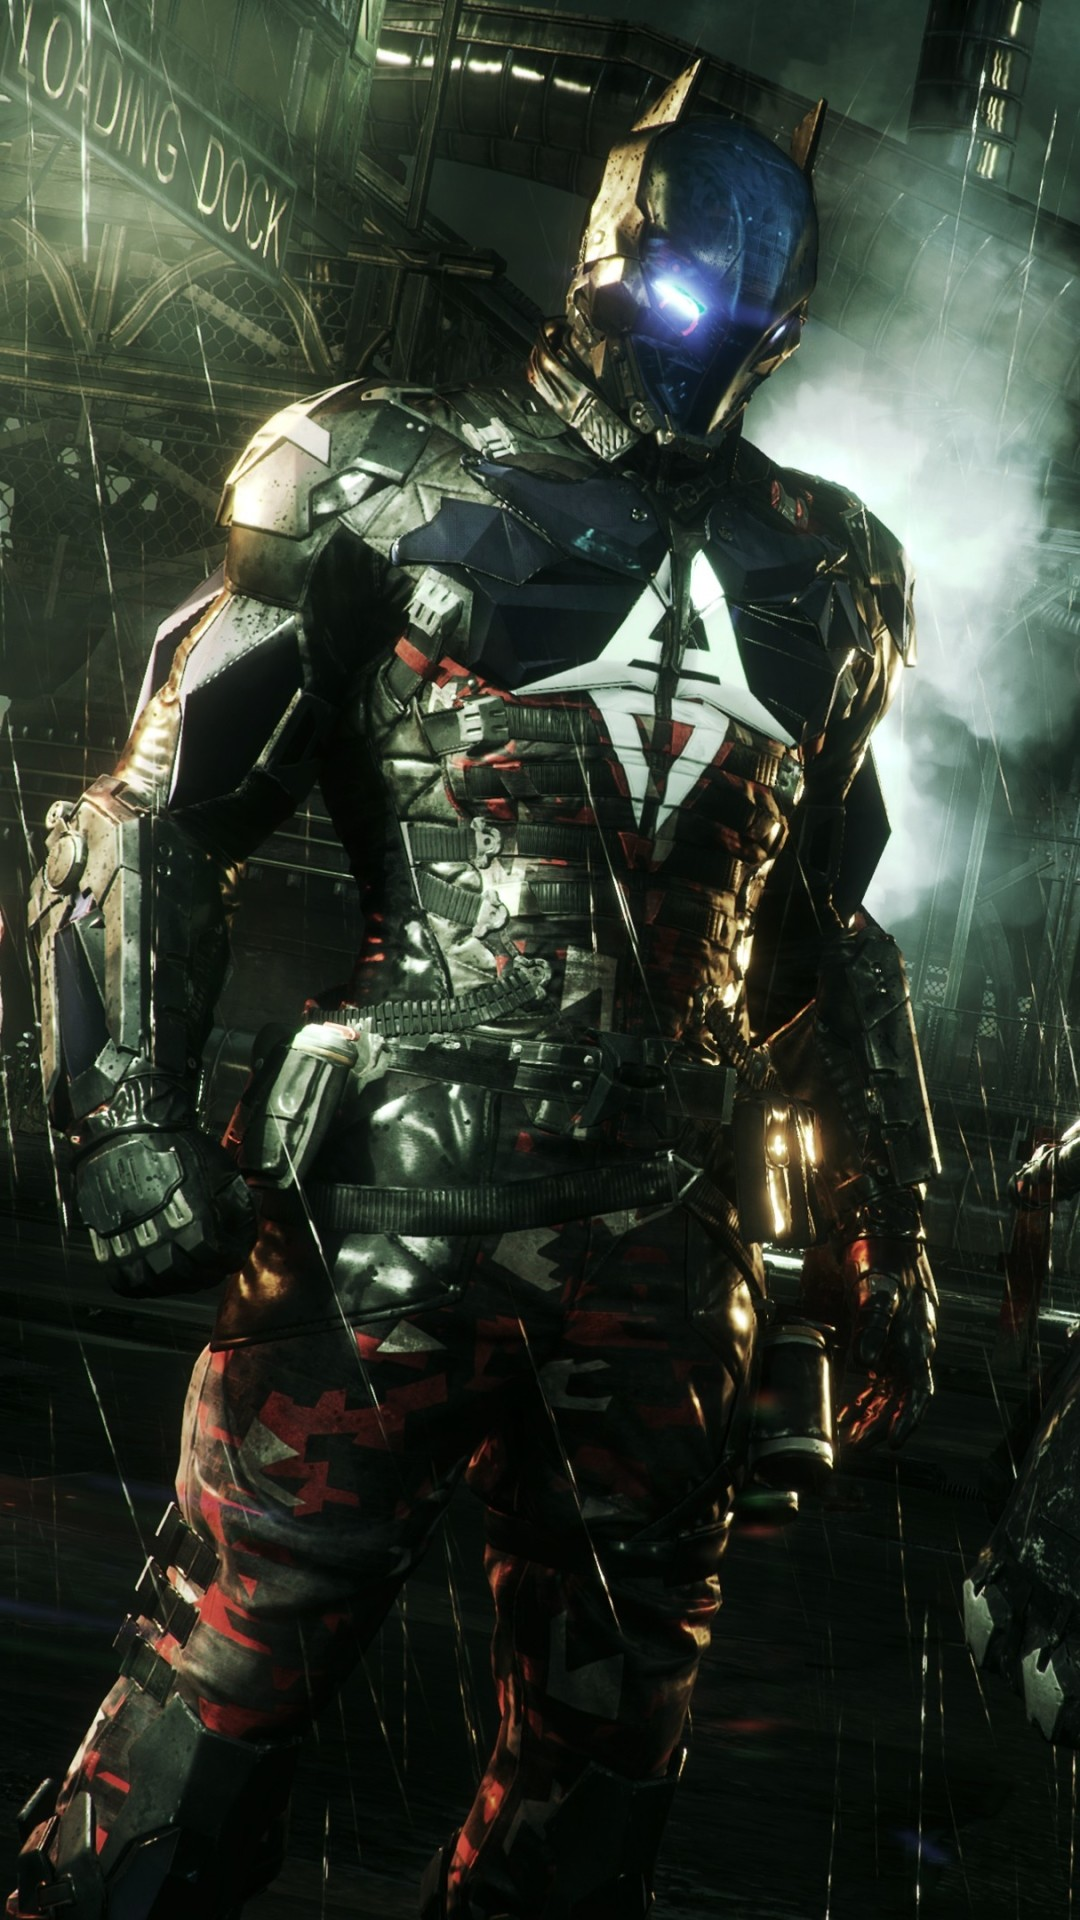 1080x1920 320x400 Px LifeWalls Collection WP24 Batman Arkham Knight IPhone Superb Images